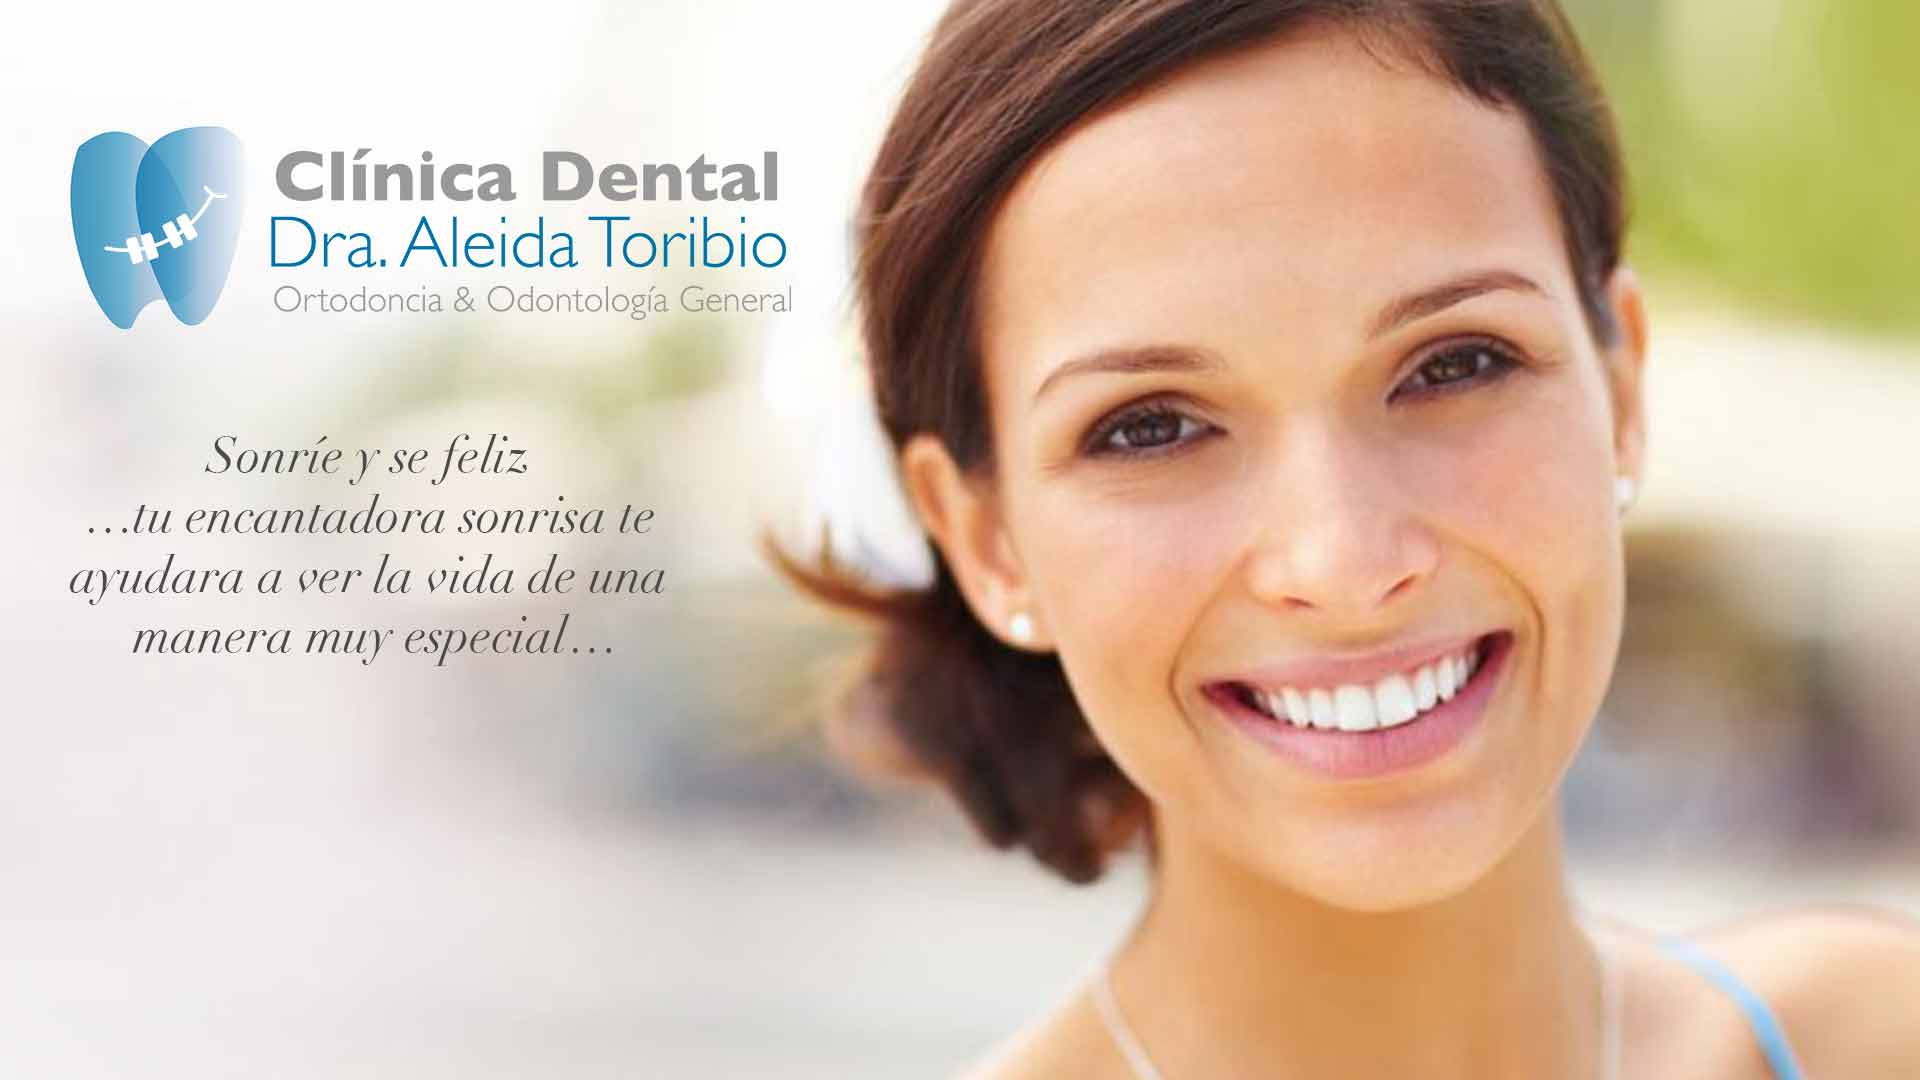 Clinica Dental Doctora Toribio